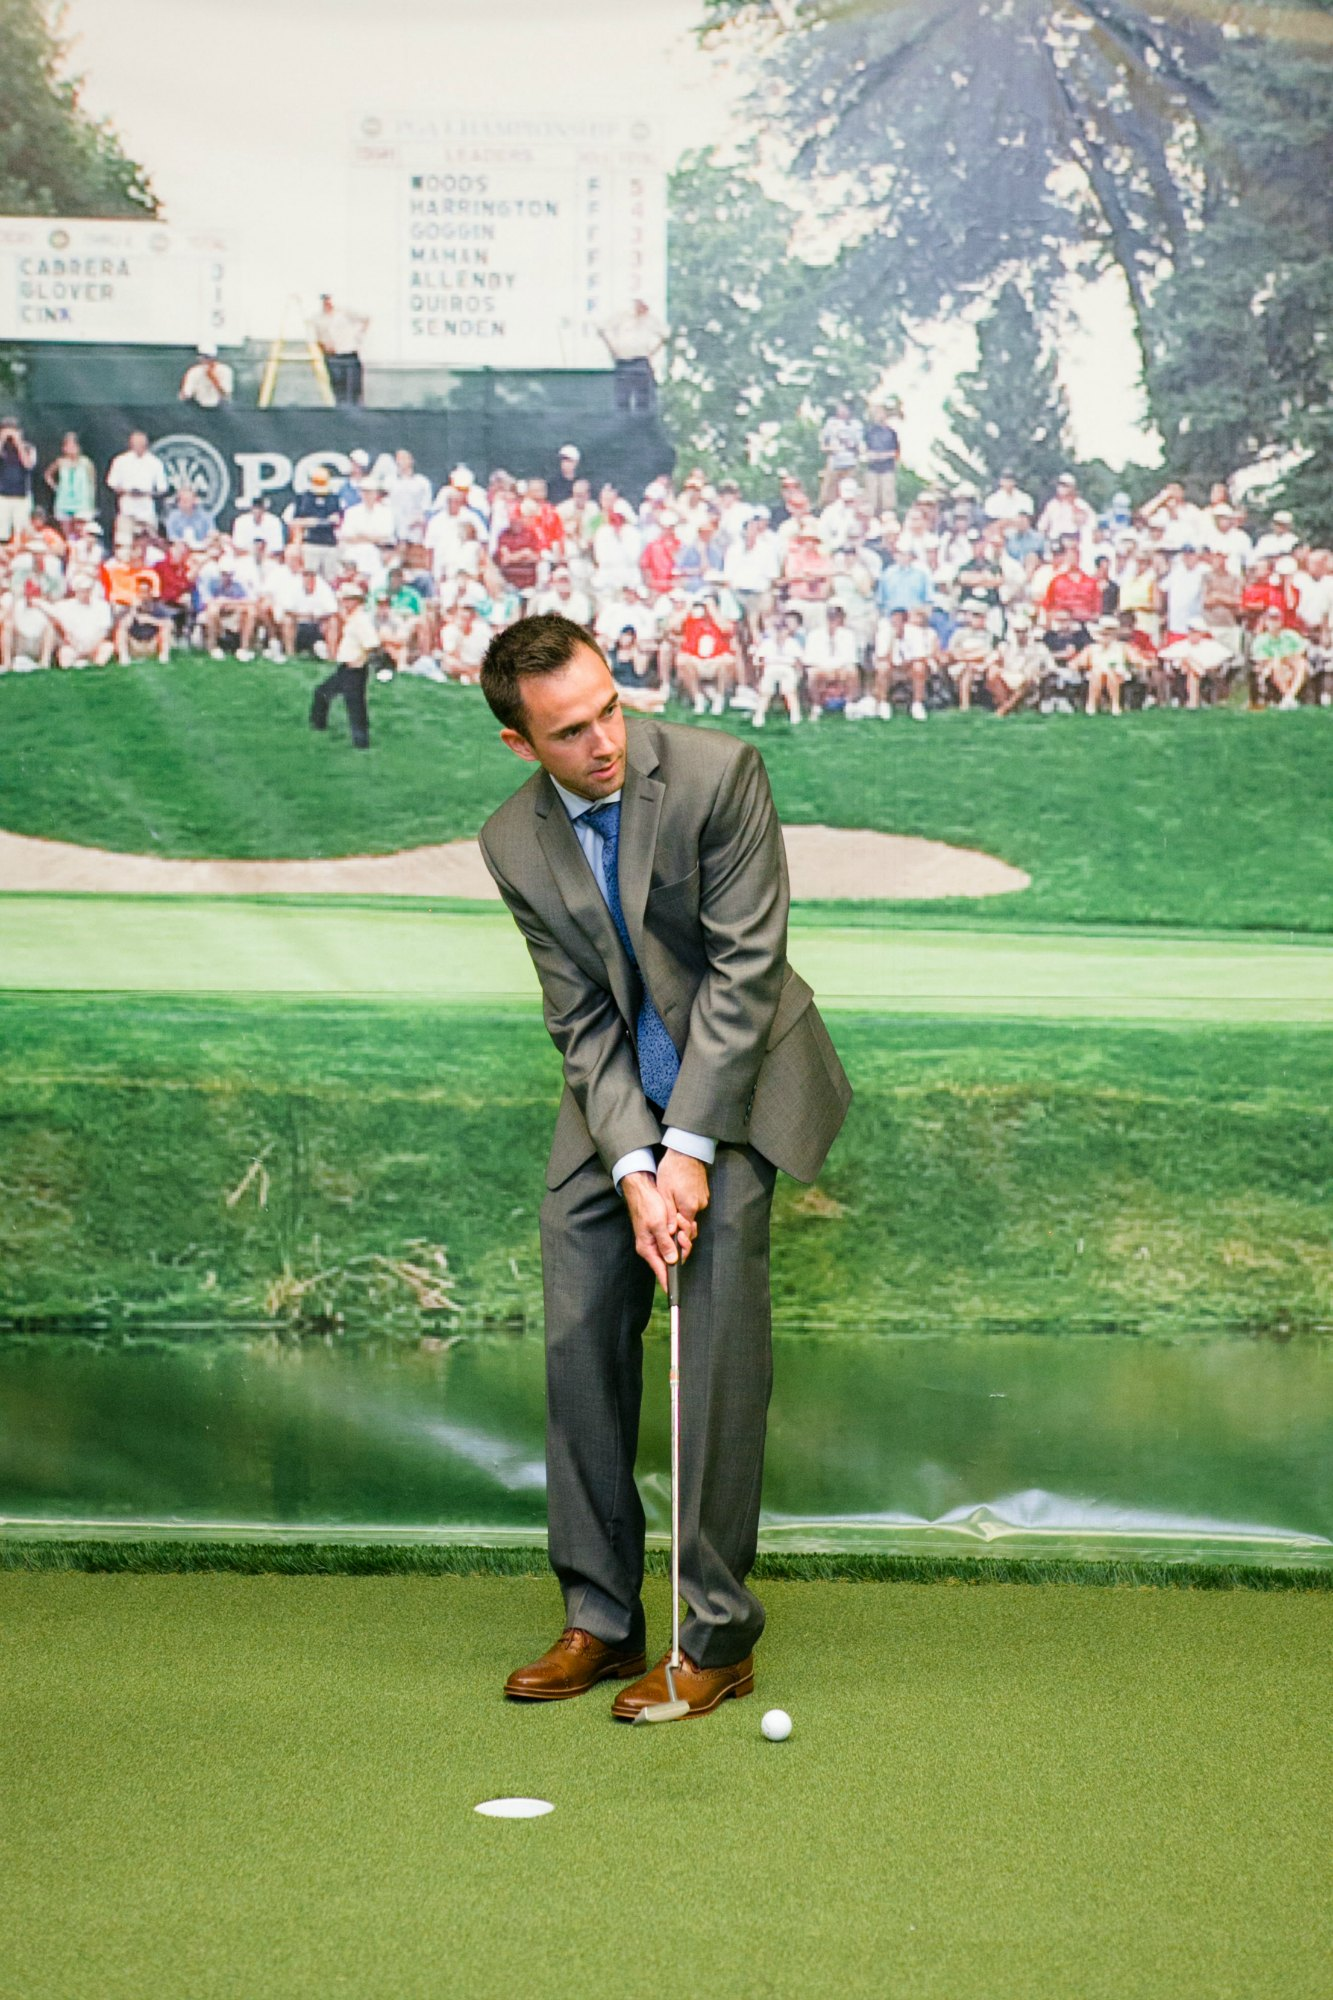 Groom in Learning Center before his wedding reception at Hazeltine National Golf Club